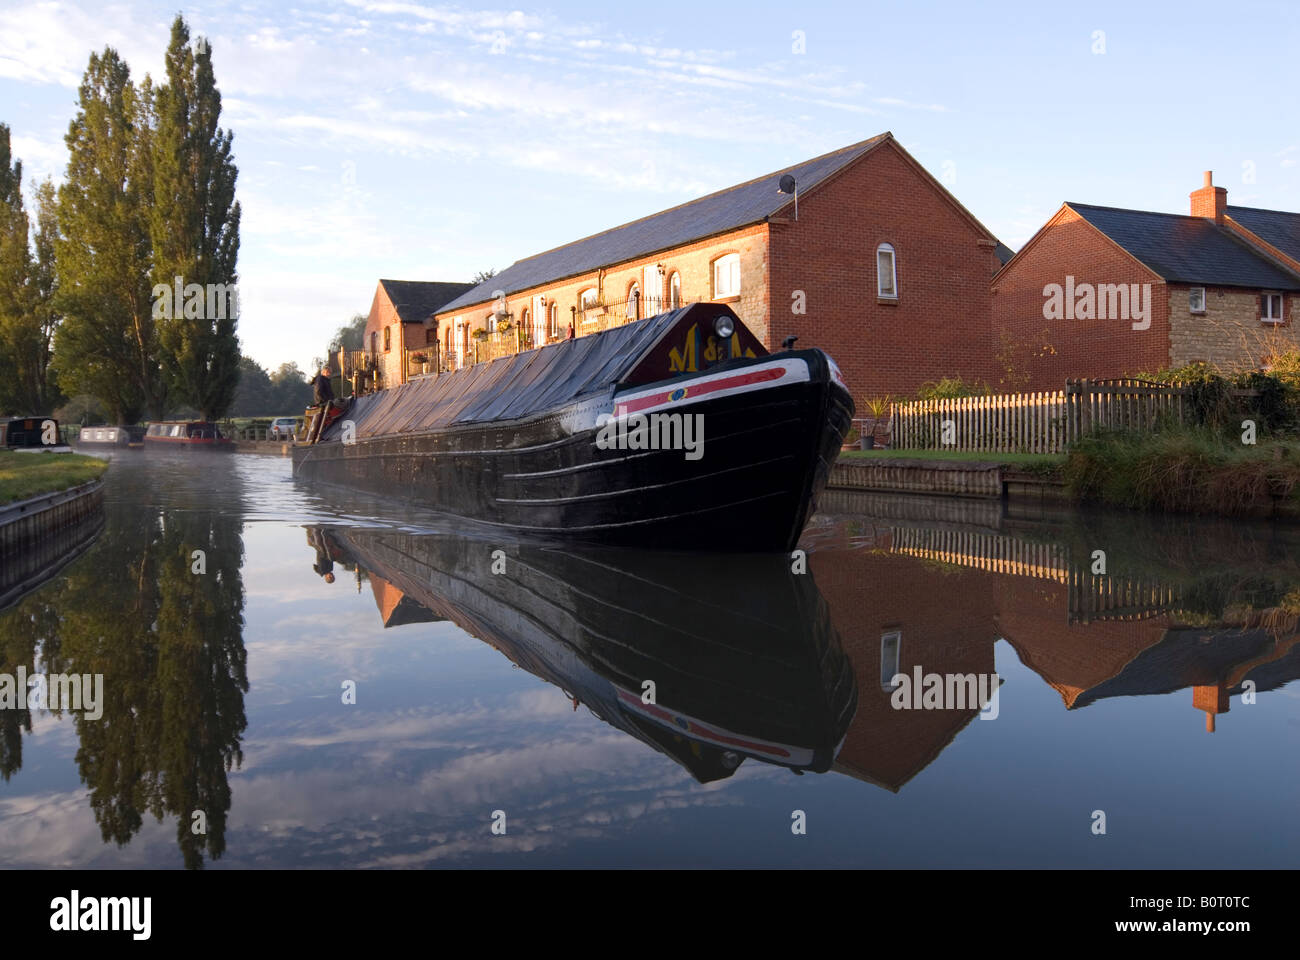 Doug Blane Traditional working narrowboat navigating at Cosgrove on the Grand Union Canal Stock Photo